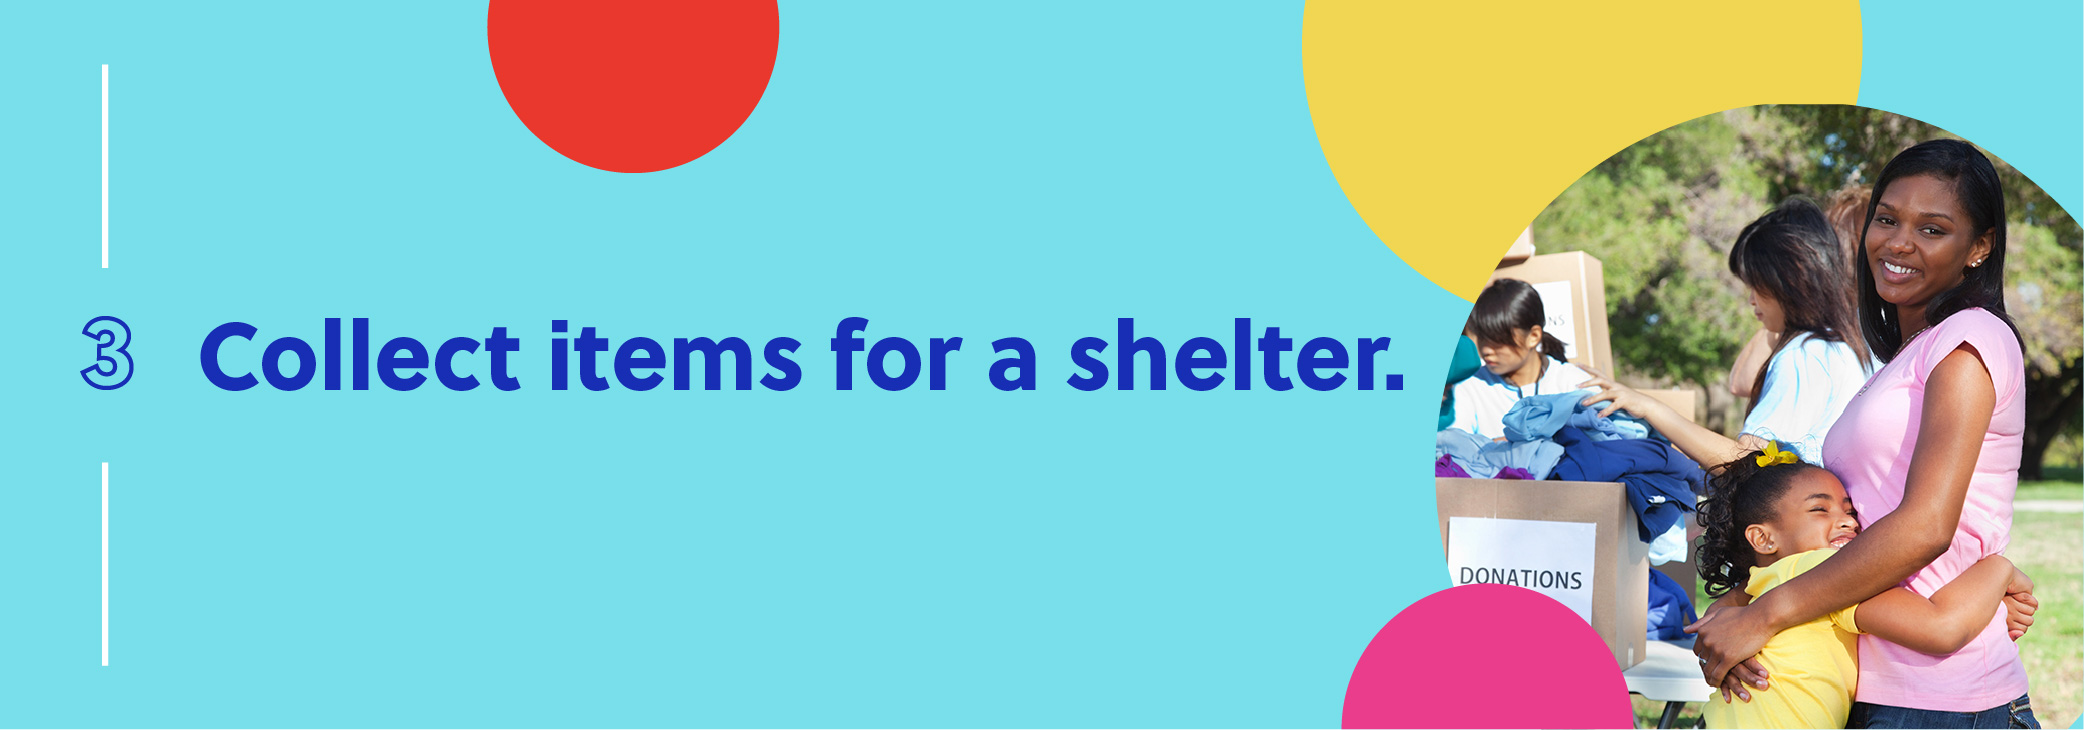 Collect items for a shelter